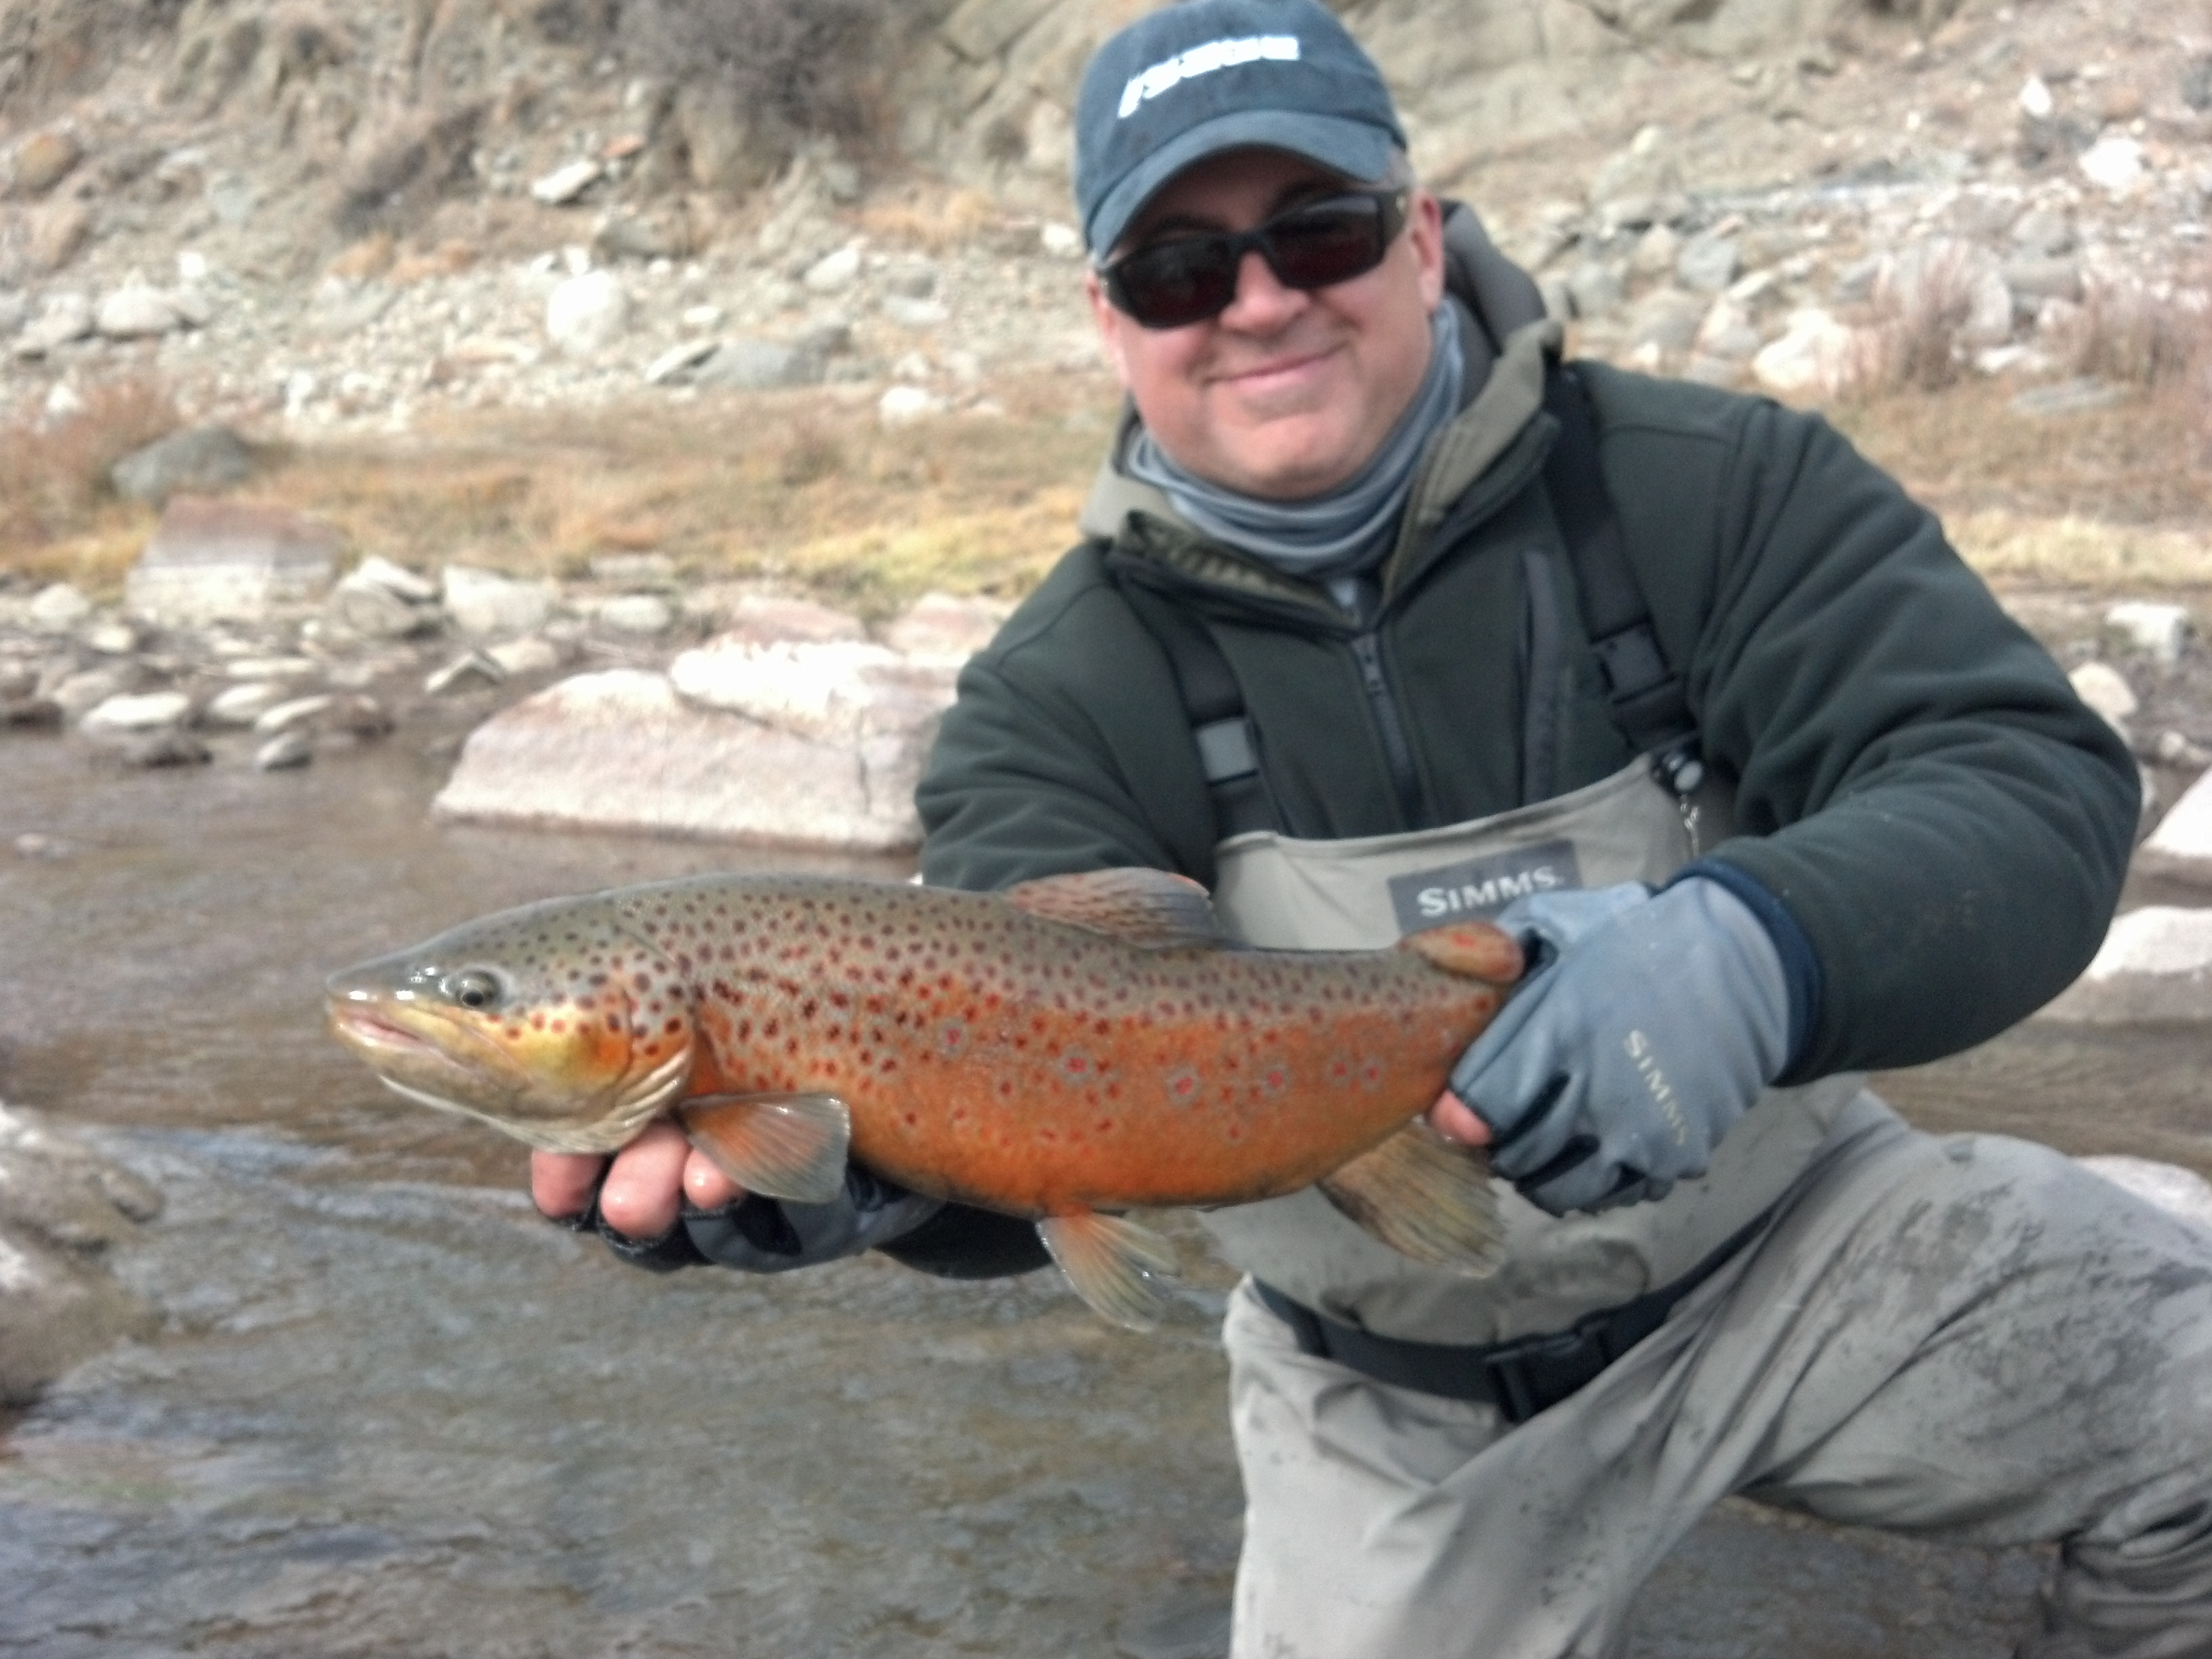 fly fishing for trout and bird hunting in one day